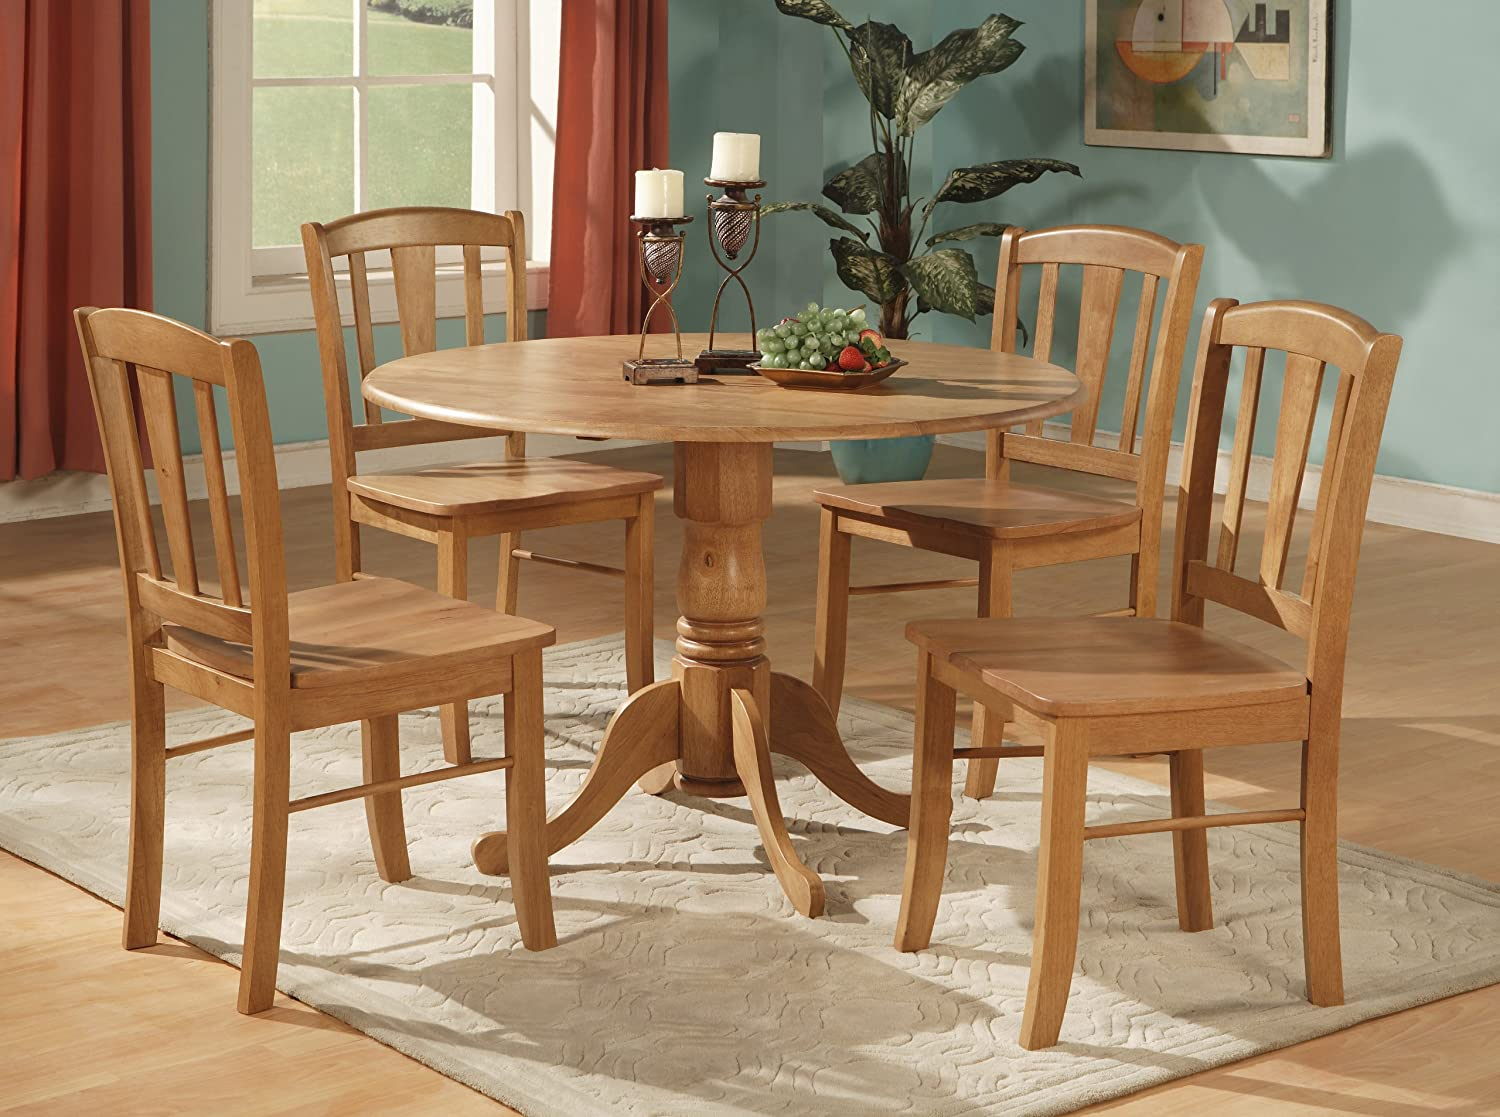 Dining room furniture charming asian Asian Inspired Amazoncom Simply Casual Toledo 5piece Dining Set Oak Table Chair Sets Amazoncom Simply Casual Toledo 5piece Dining Set Oak Table